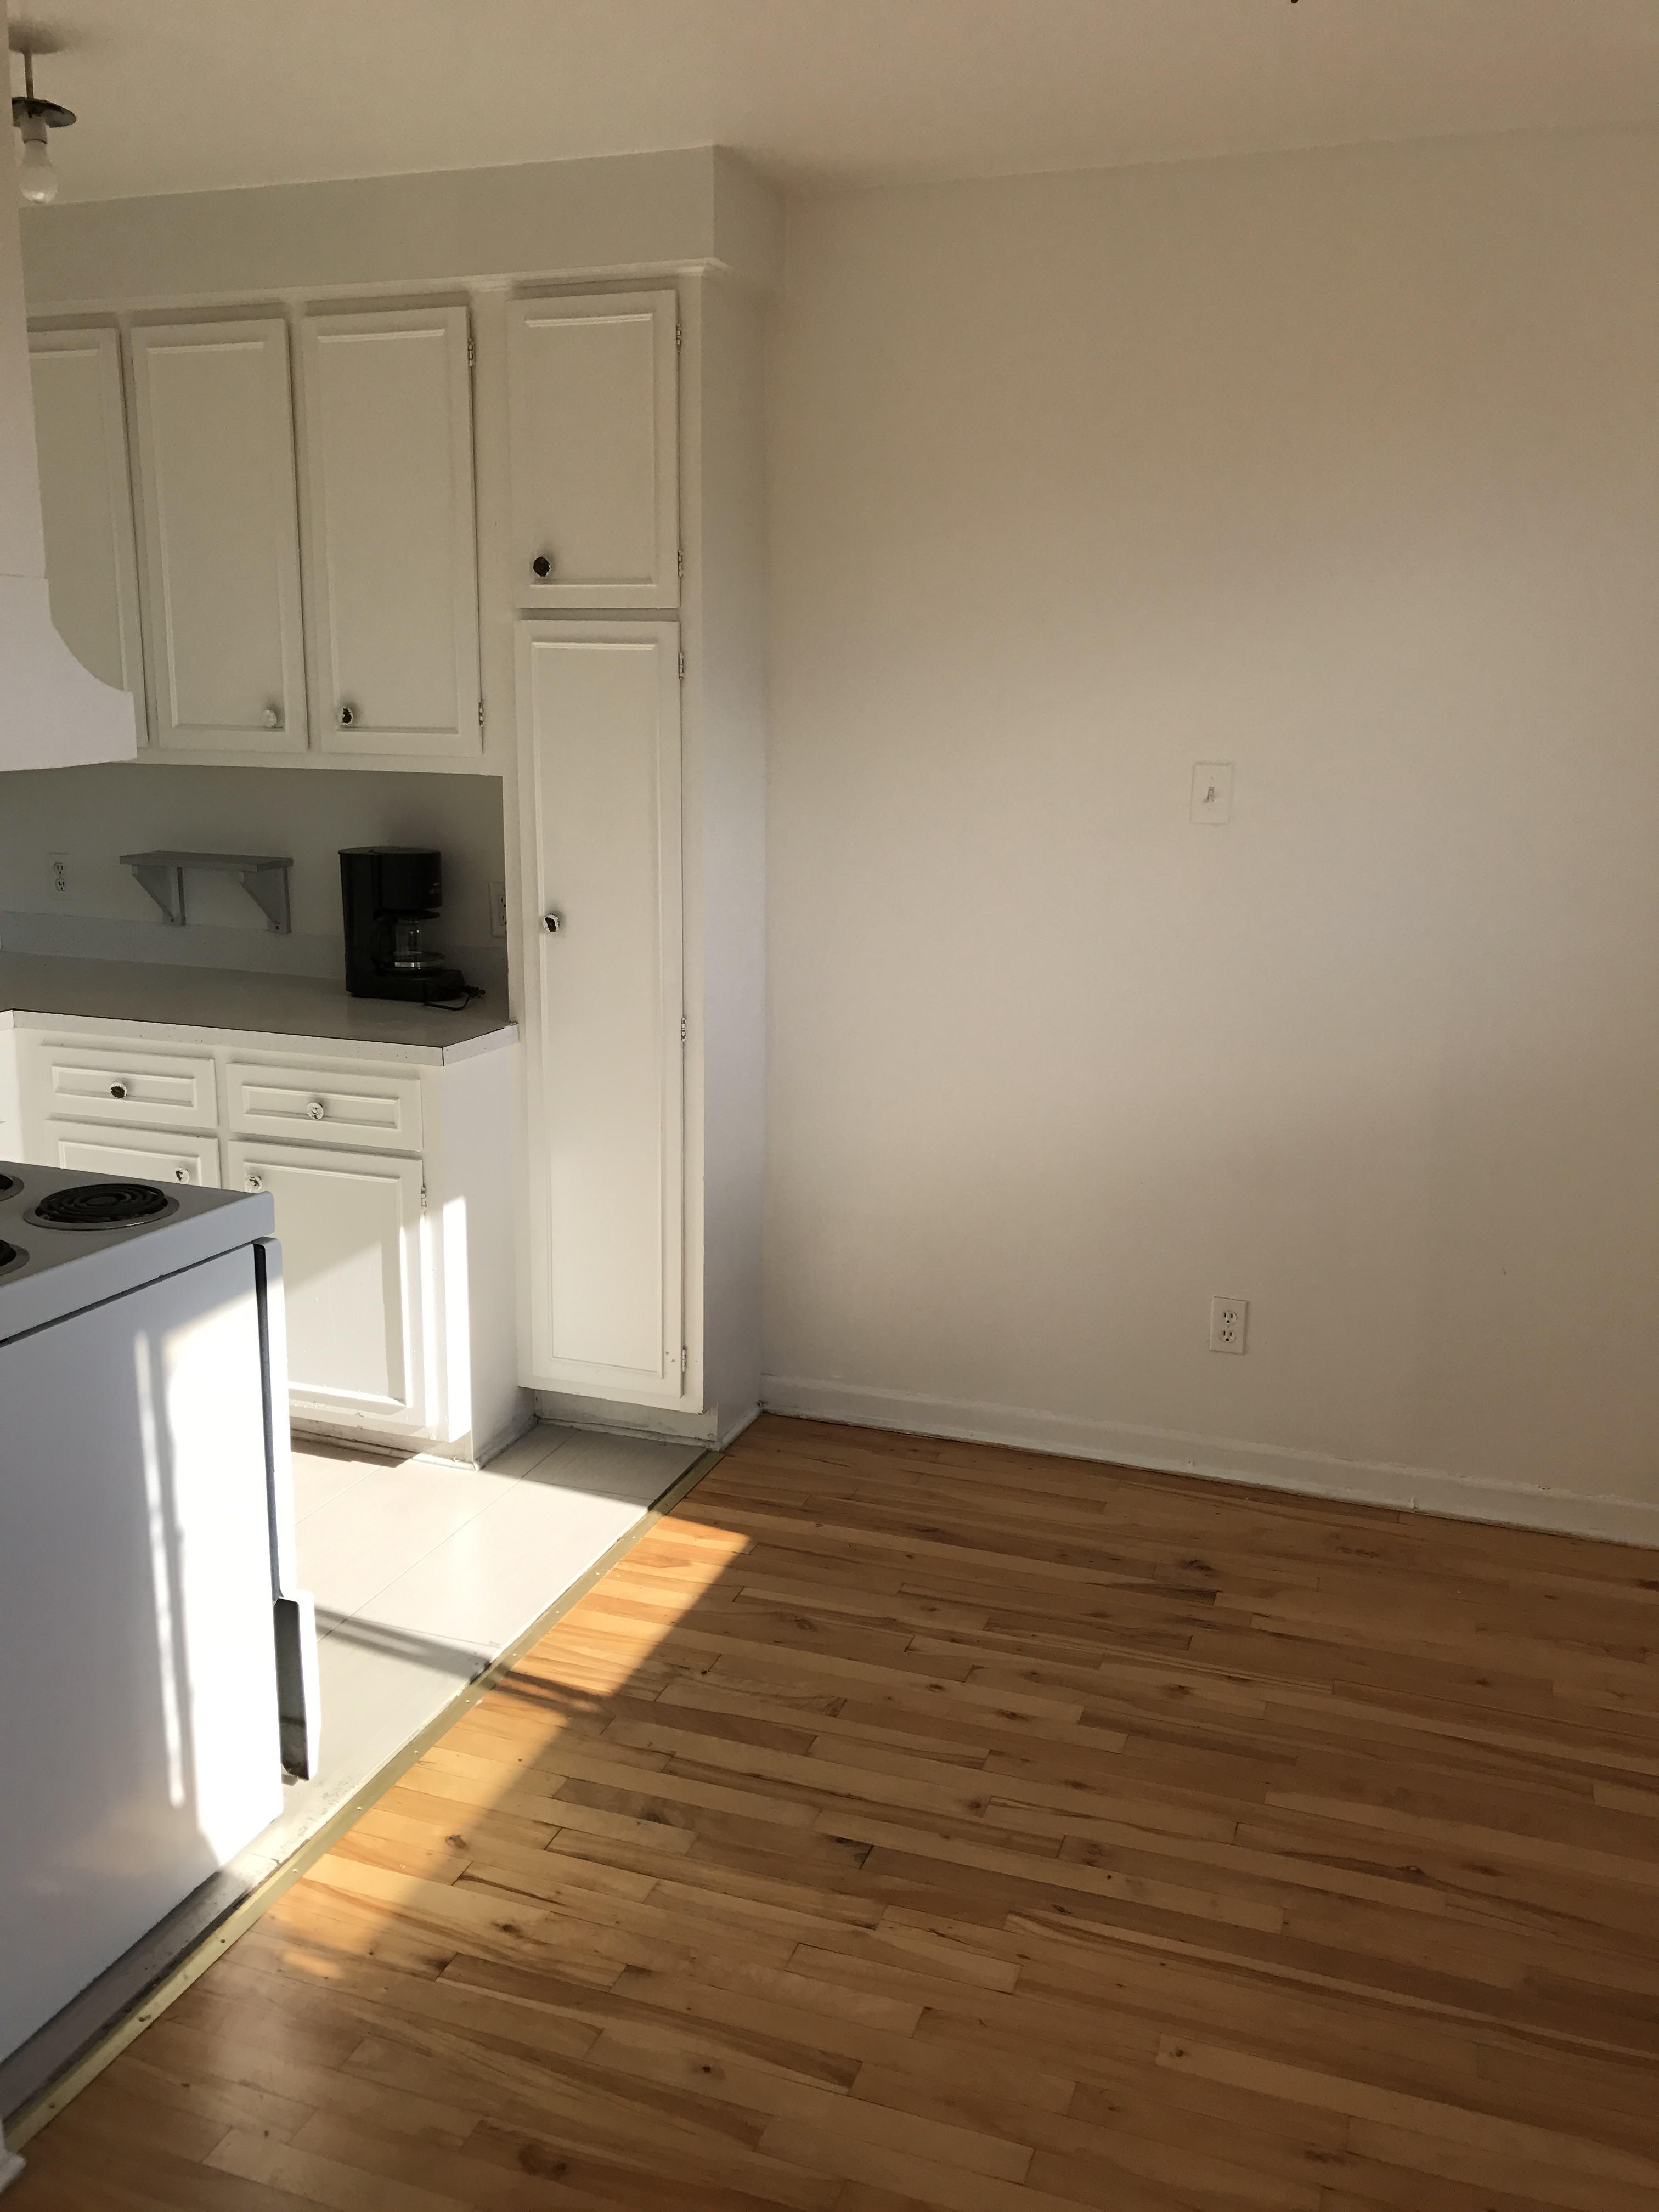 1 bedroom Apartments for rent in Laval at 4750 Samson - Photo 02 - RentQuebecApartments – L21500